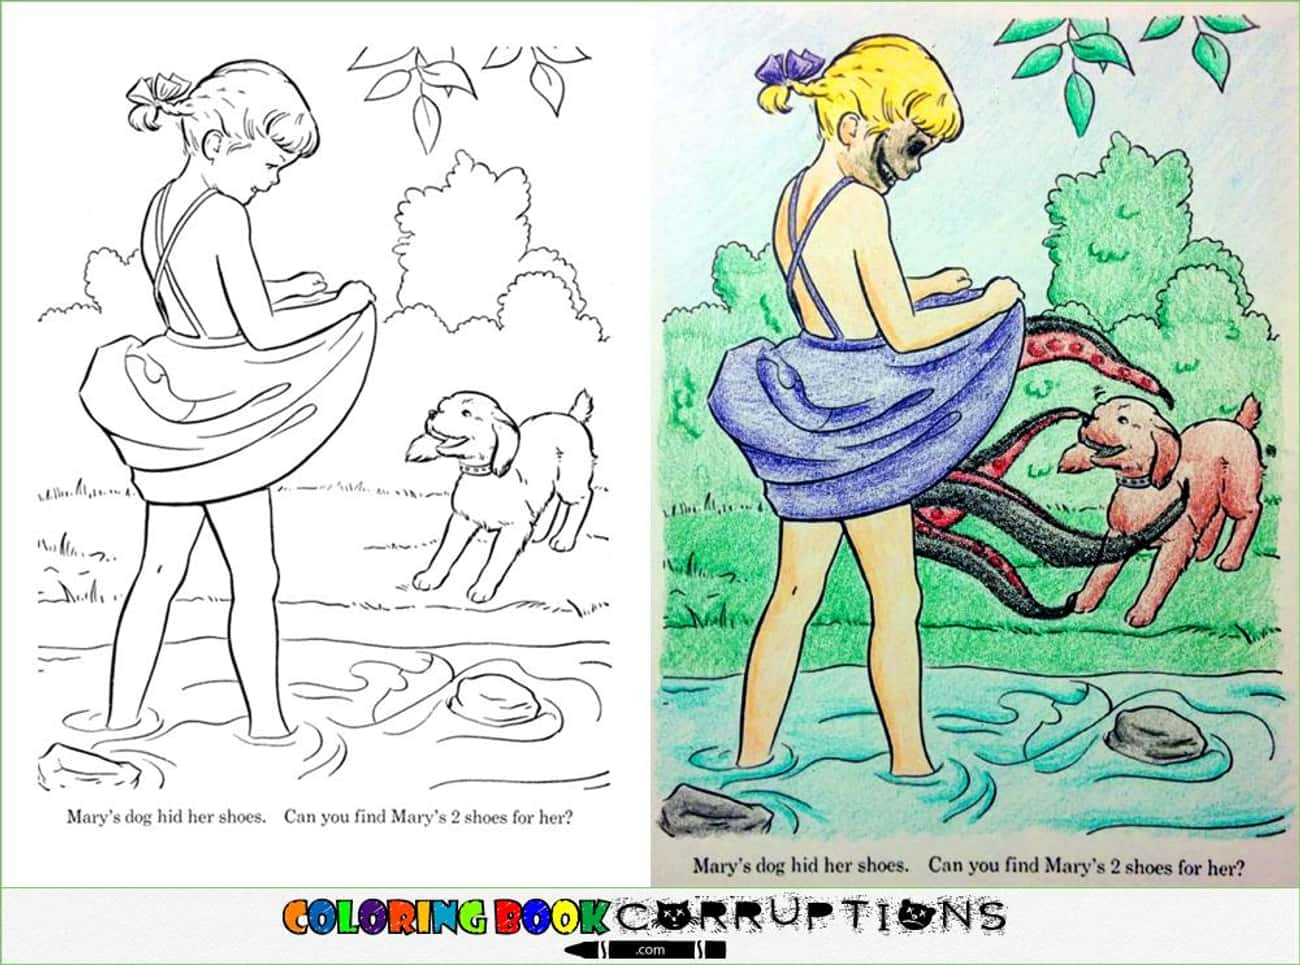 Tentacle Coppertone Girl is listed (or ranked) 1 on the list These Coloring Book Corruptions Will Taint Your Childhood